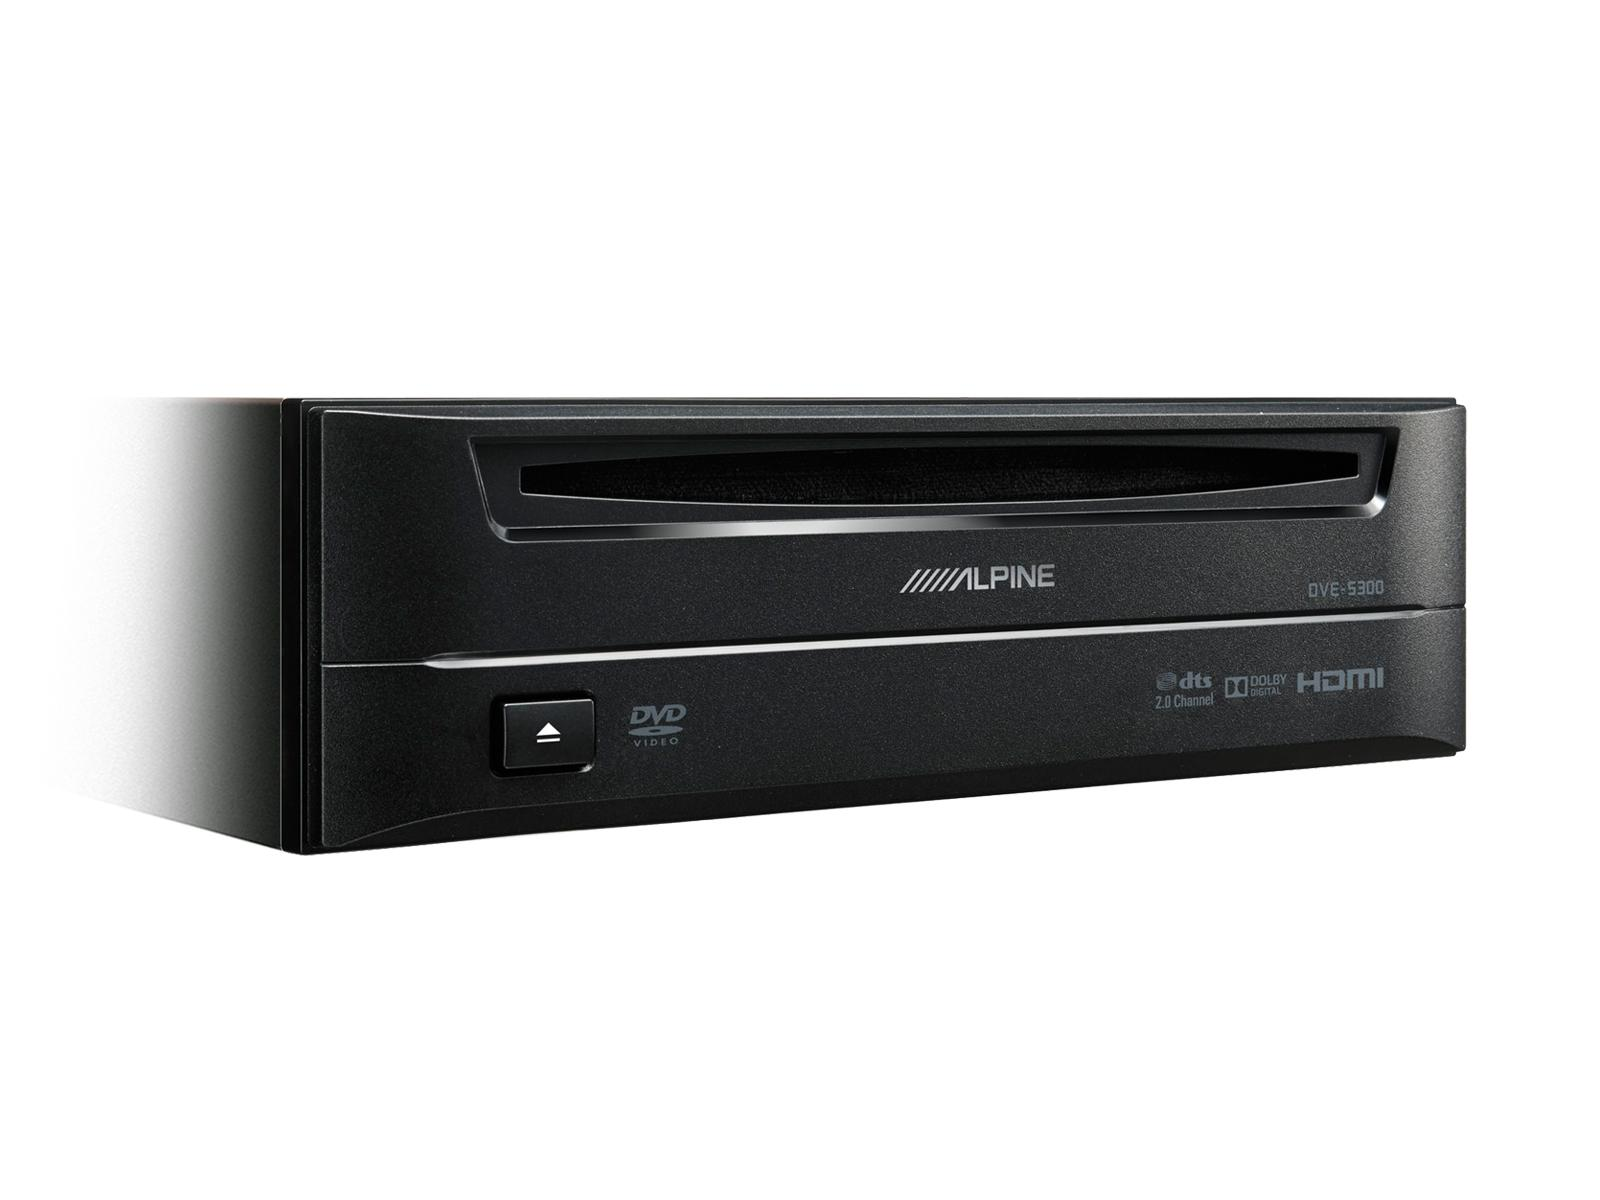 alpine dve 5300g lecteur cd dvd avec kit installation golf 7 hdmi 354010. Black Bedroom Furniture Sets. Home Design Ideas